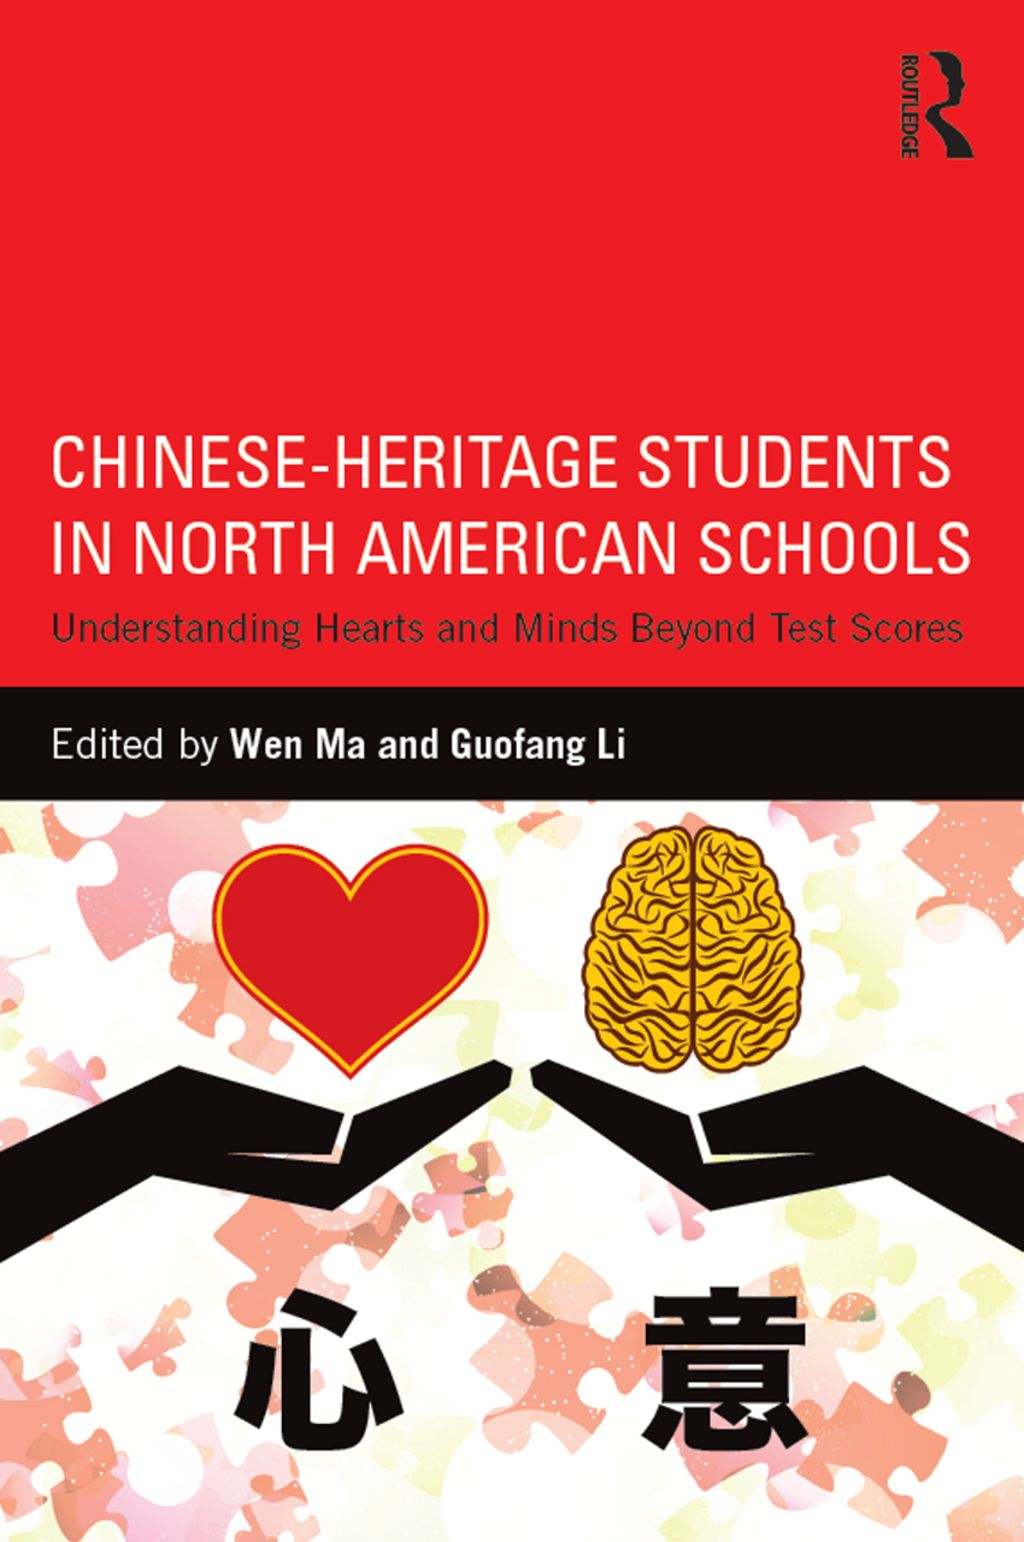 ChineseHeritage Students in North American Schools (eBook